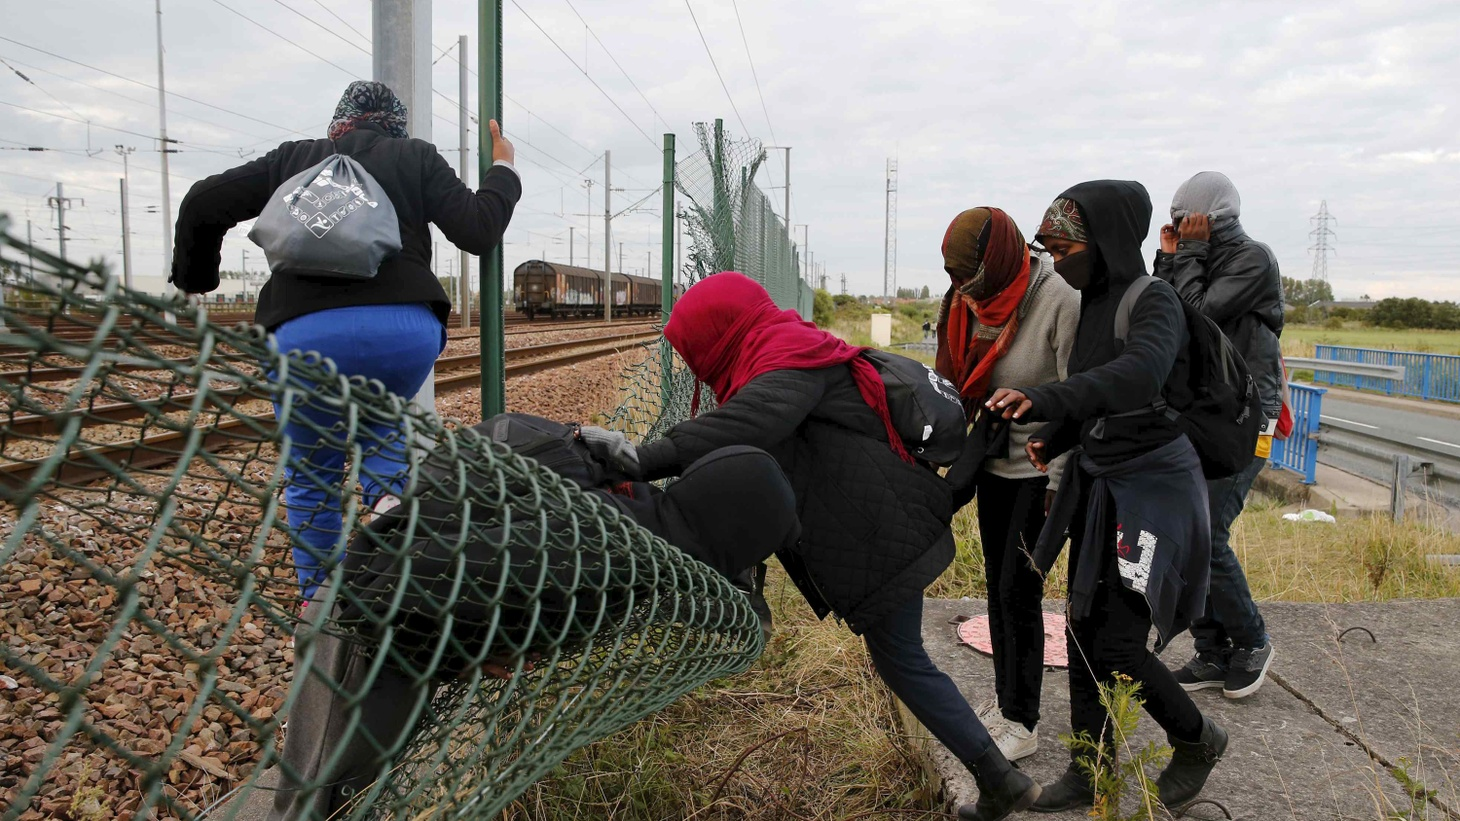 Greece, France, Italy and Germany are all trying to accommodate an increased flow of refugees fro Syria, Eritrea, Afghanistan and other countries. We focus on England as a microcosm of the migration crisis facing the European Union.